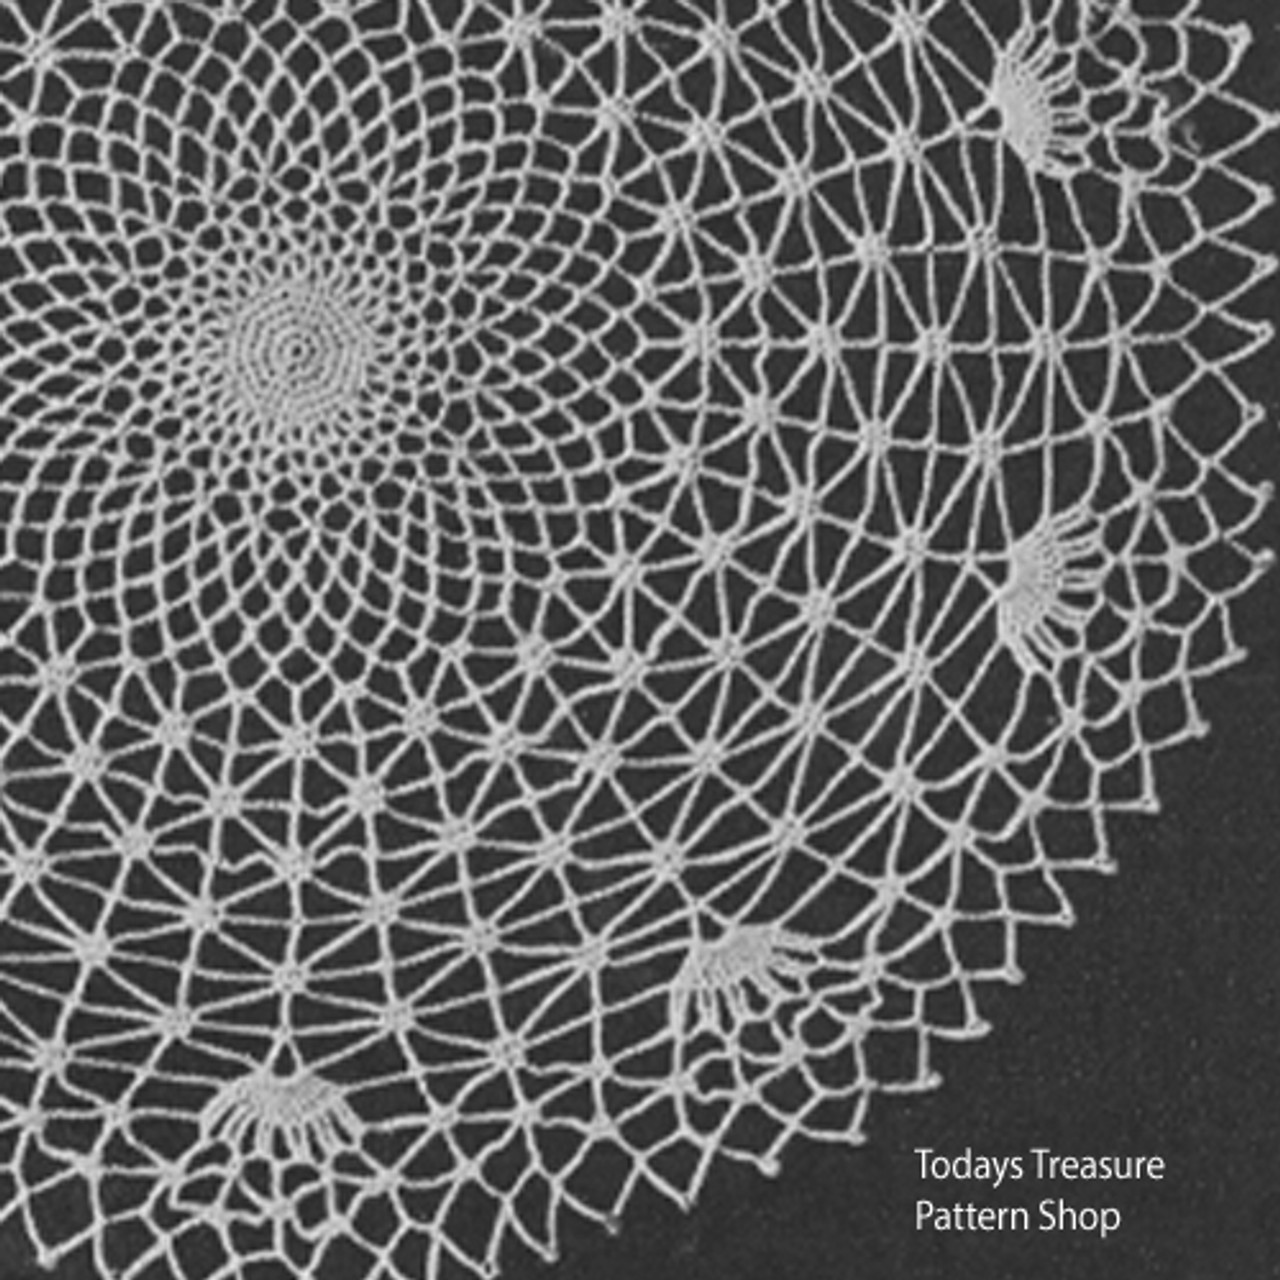 Vintage Spider Web Crochet Doily Pattern from American Thread